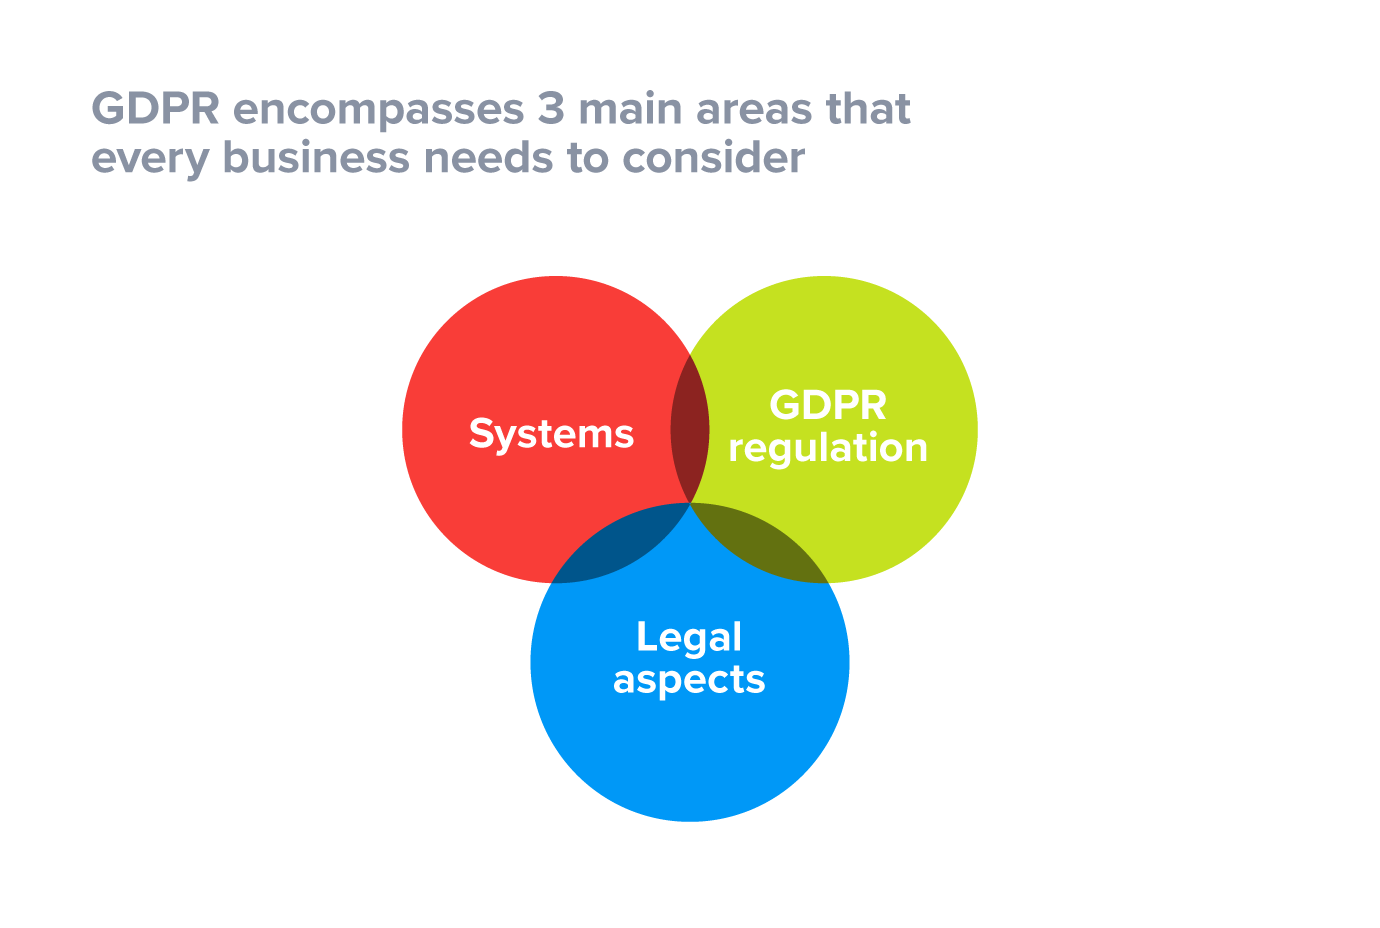 The 3 business areas that GDPR impacts